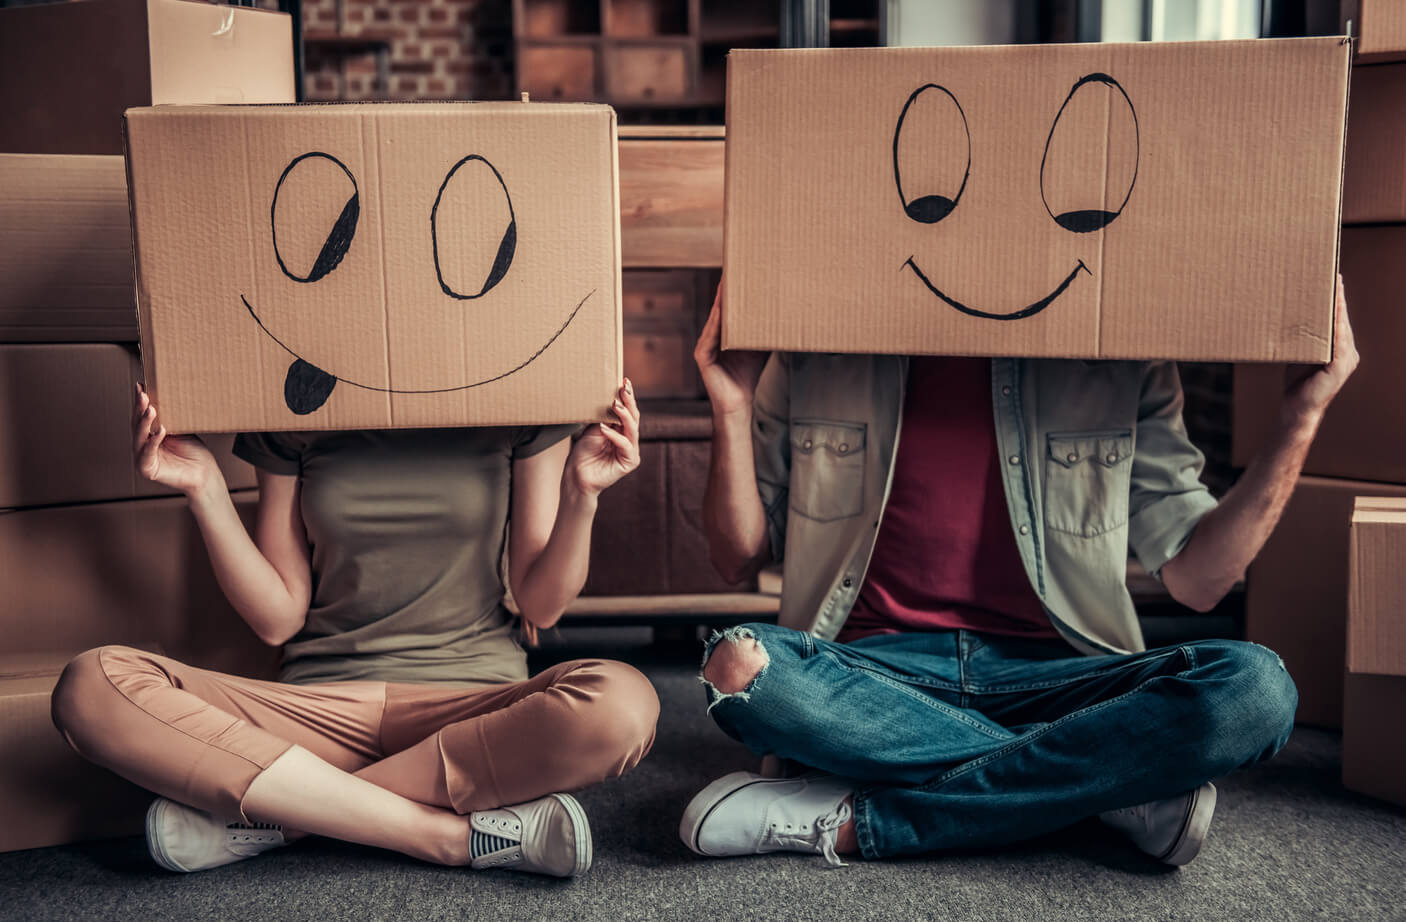 Two people with boxes on their heads